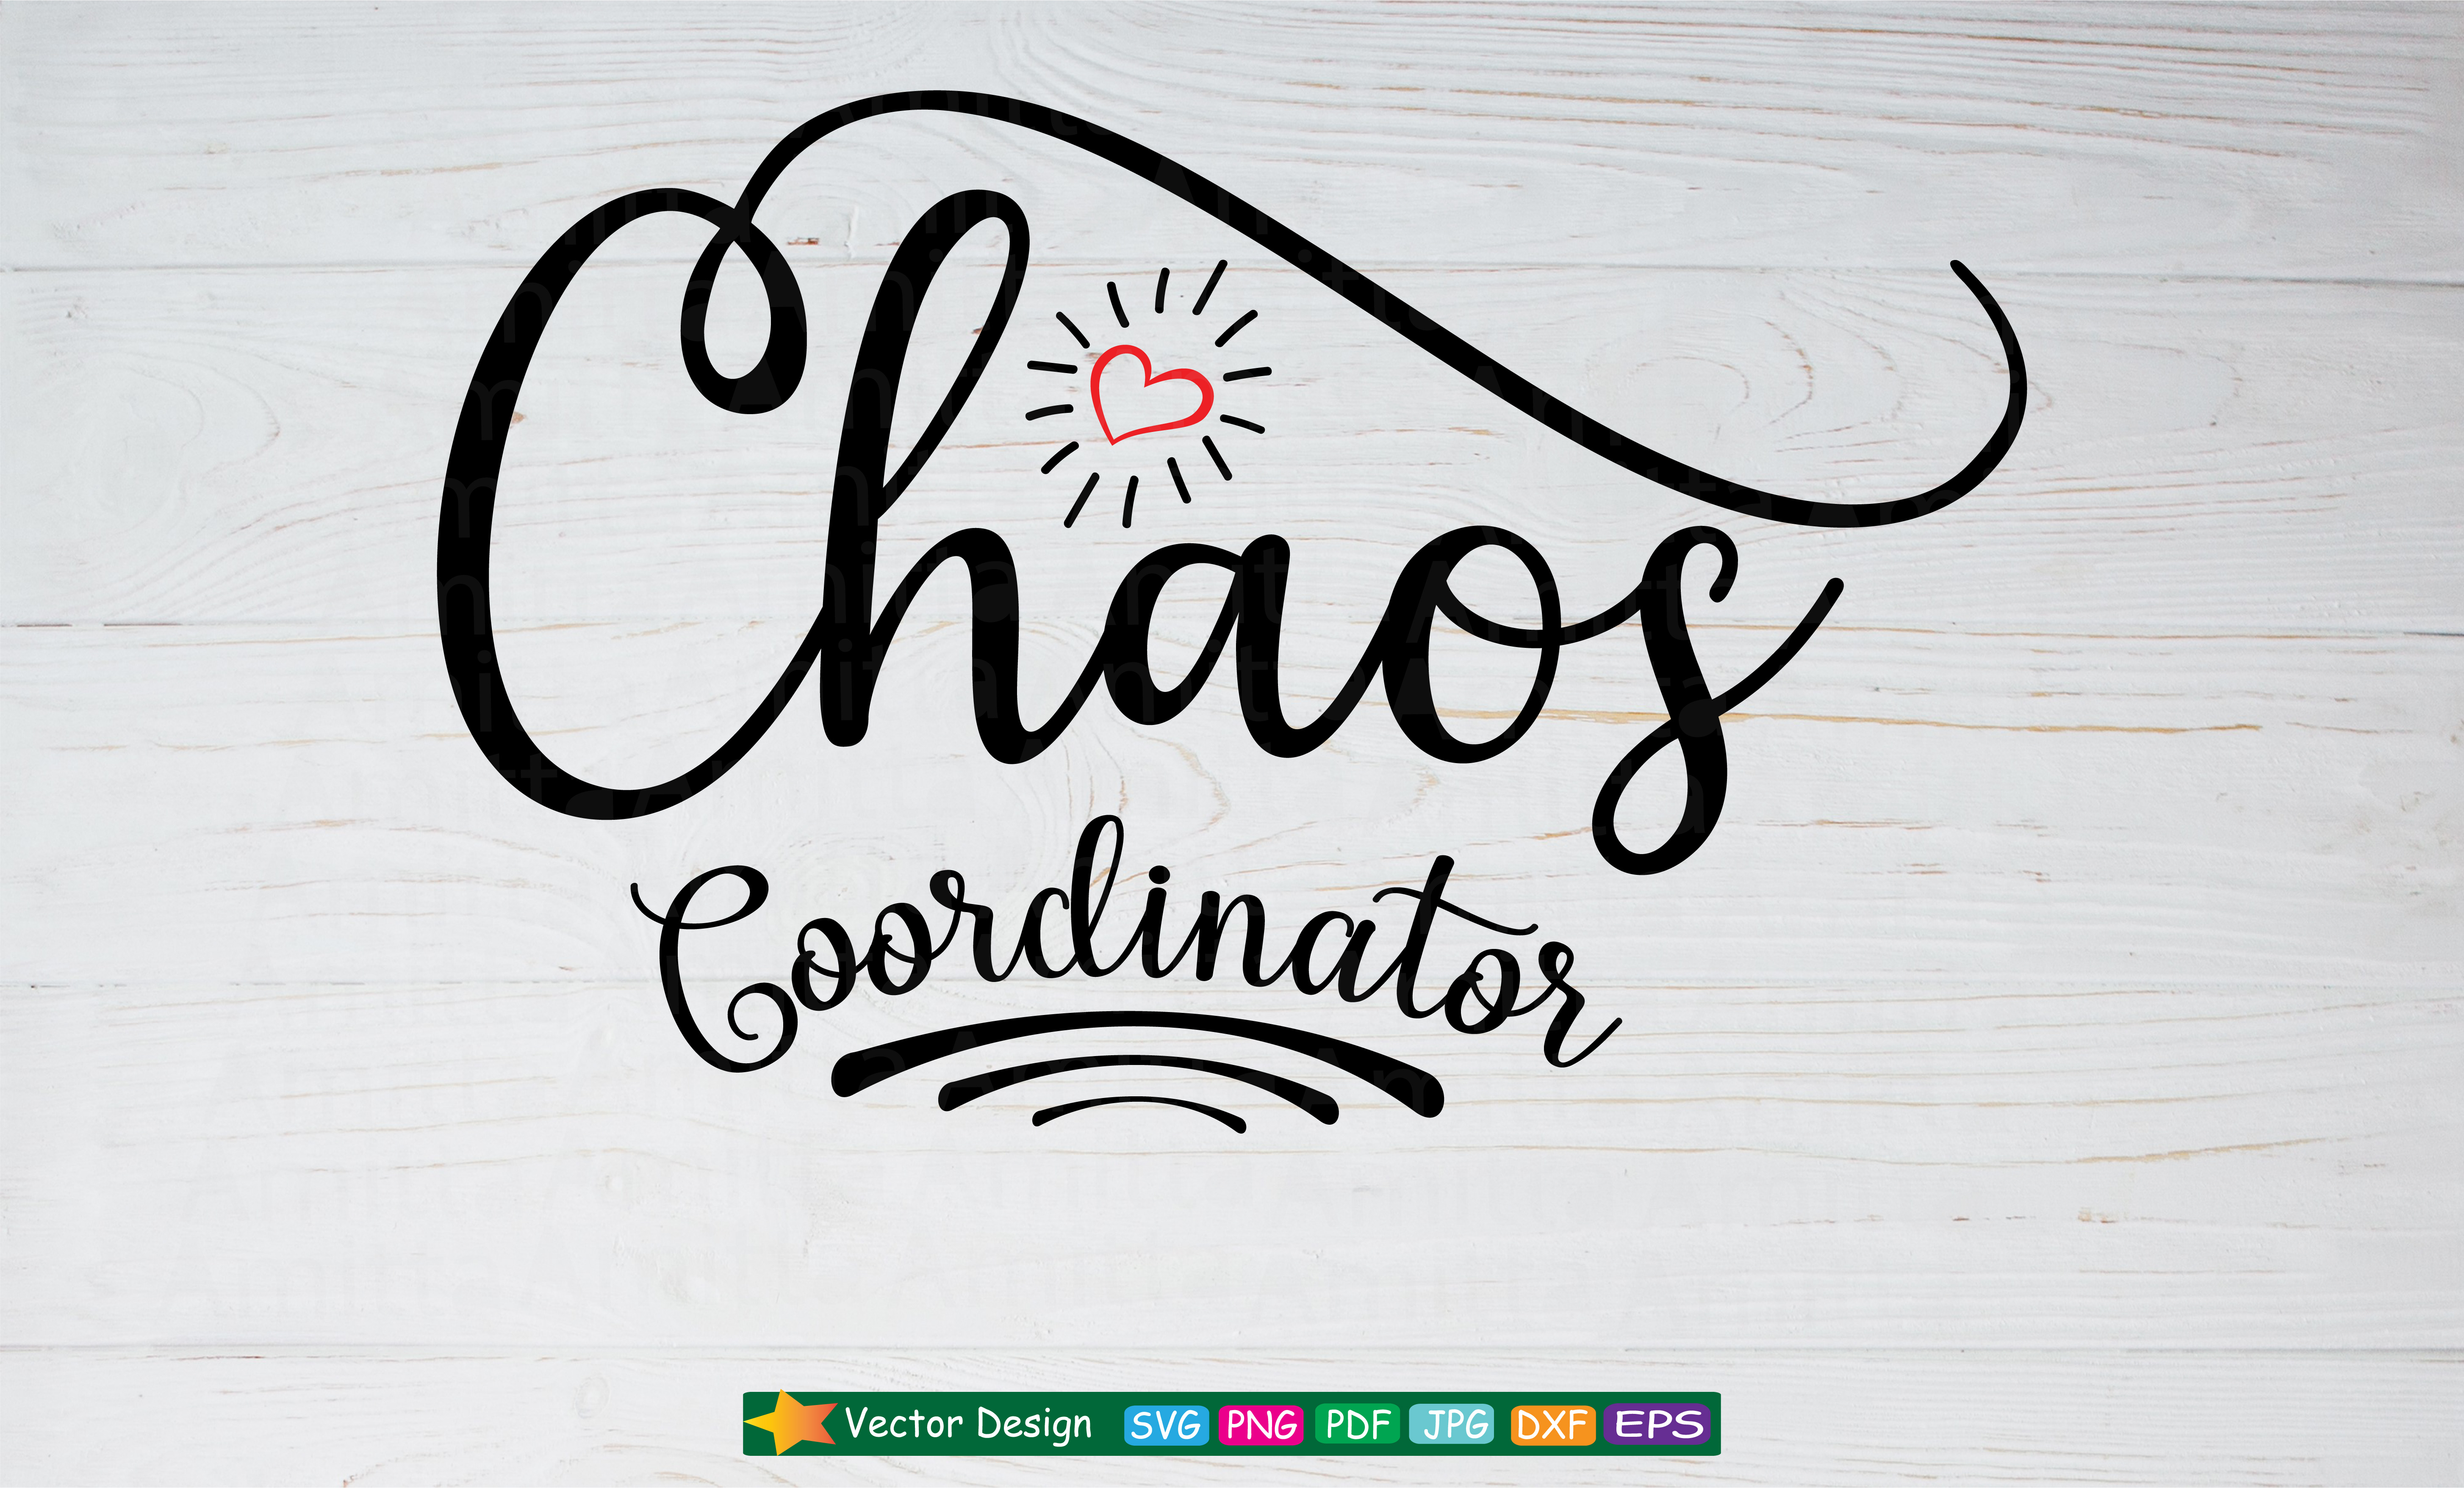 Download Free Chaos Coordinator Graphic By Amitta Creative Fabrica for Cricut Explore, Silhouette and other cutting machines.